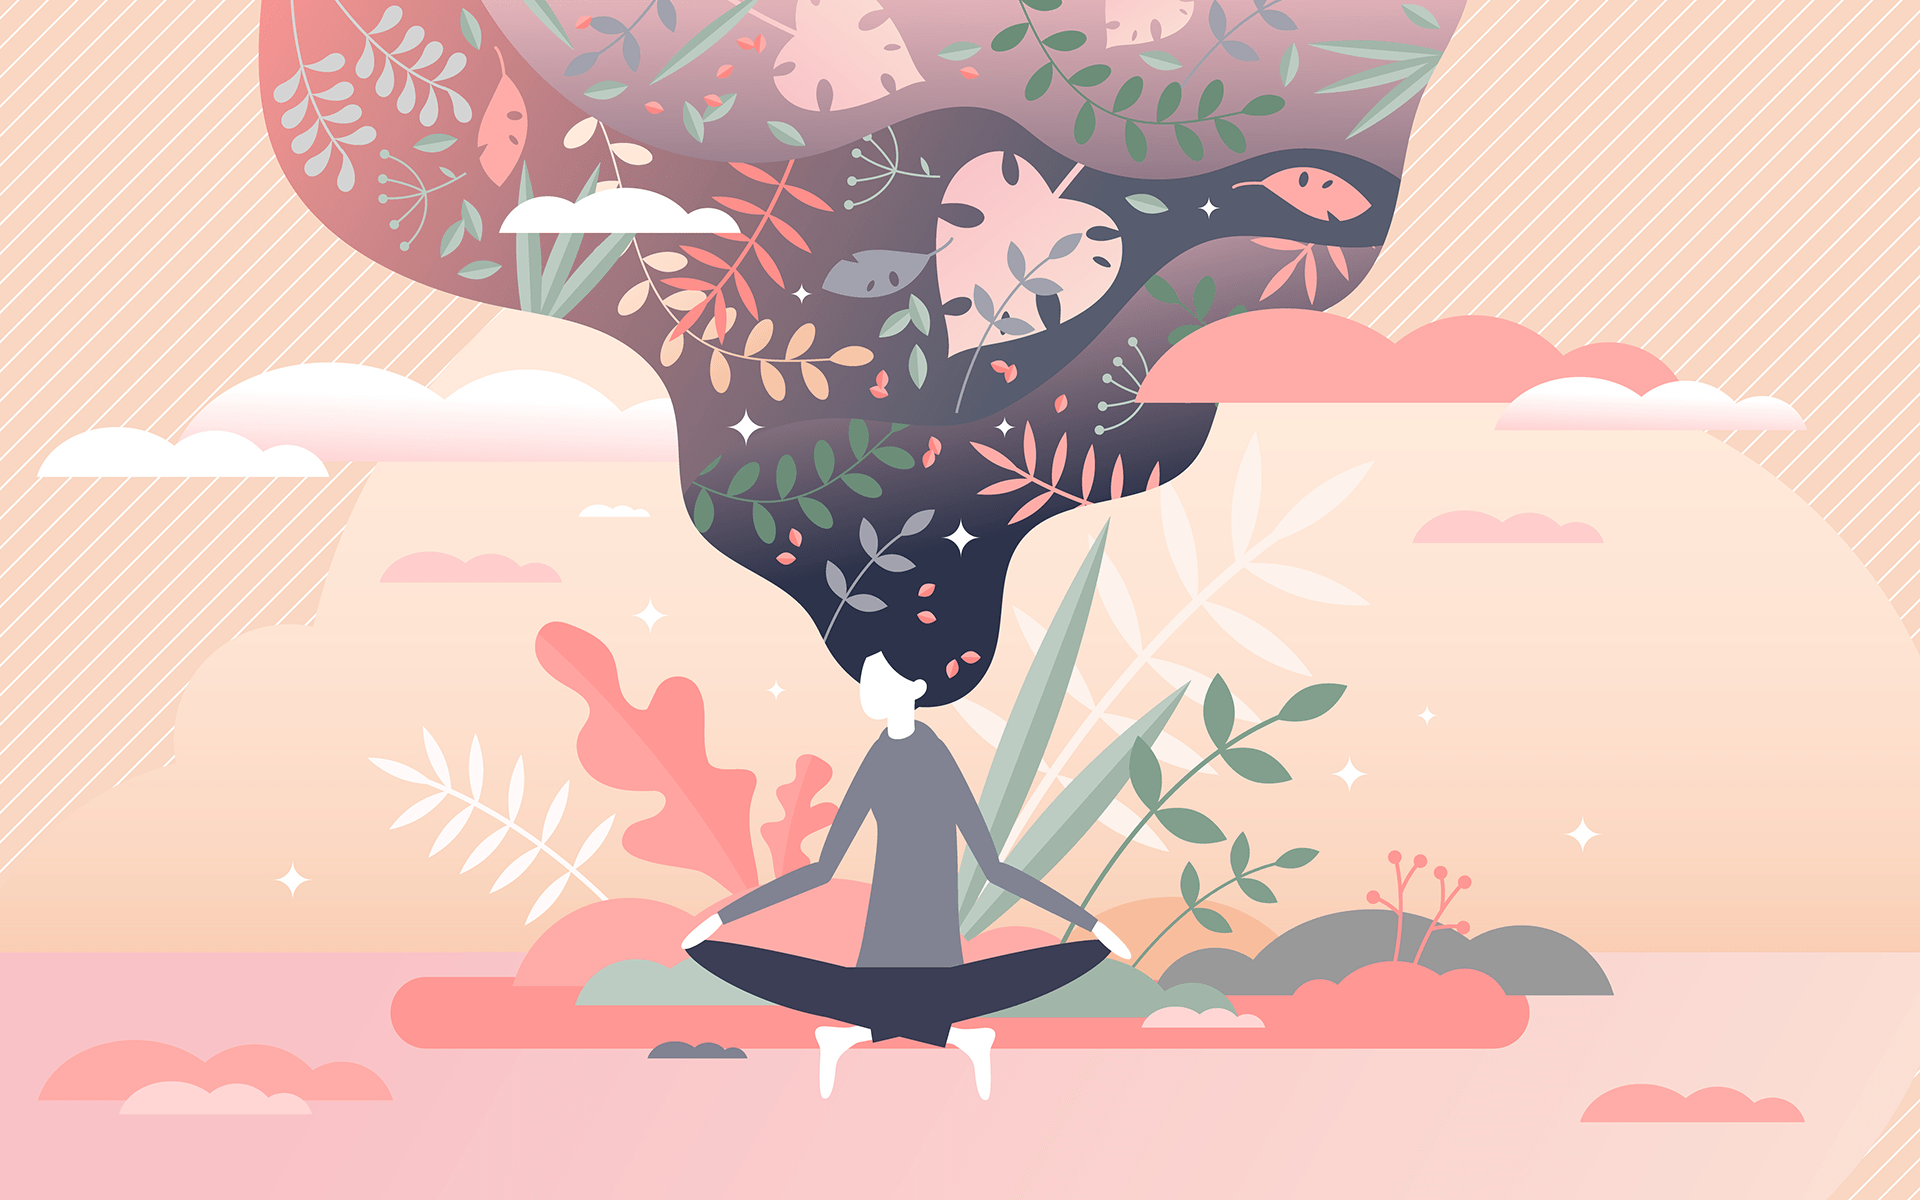 How to Regain Focus When Your Mind Wanders—Illustration of a woman meditating in a pink background depicting nature and her black hair flows upwards with flowers, leaves, etc. in it.